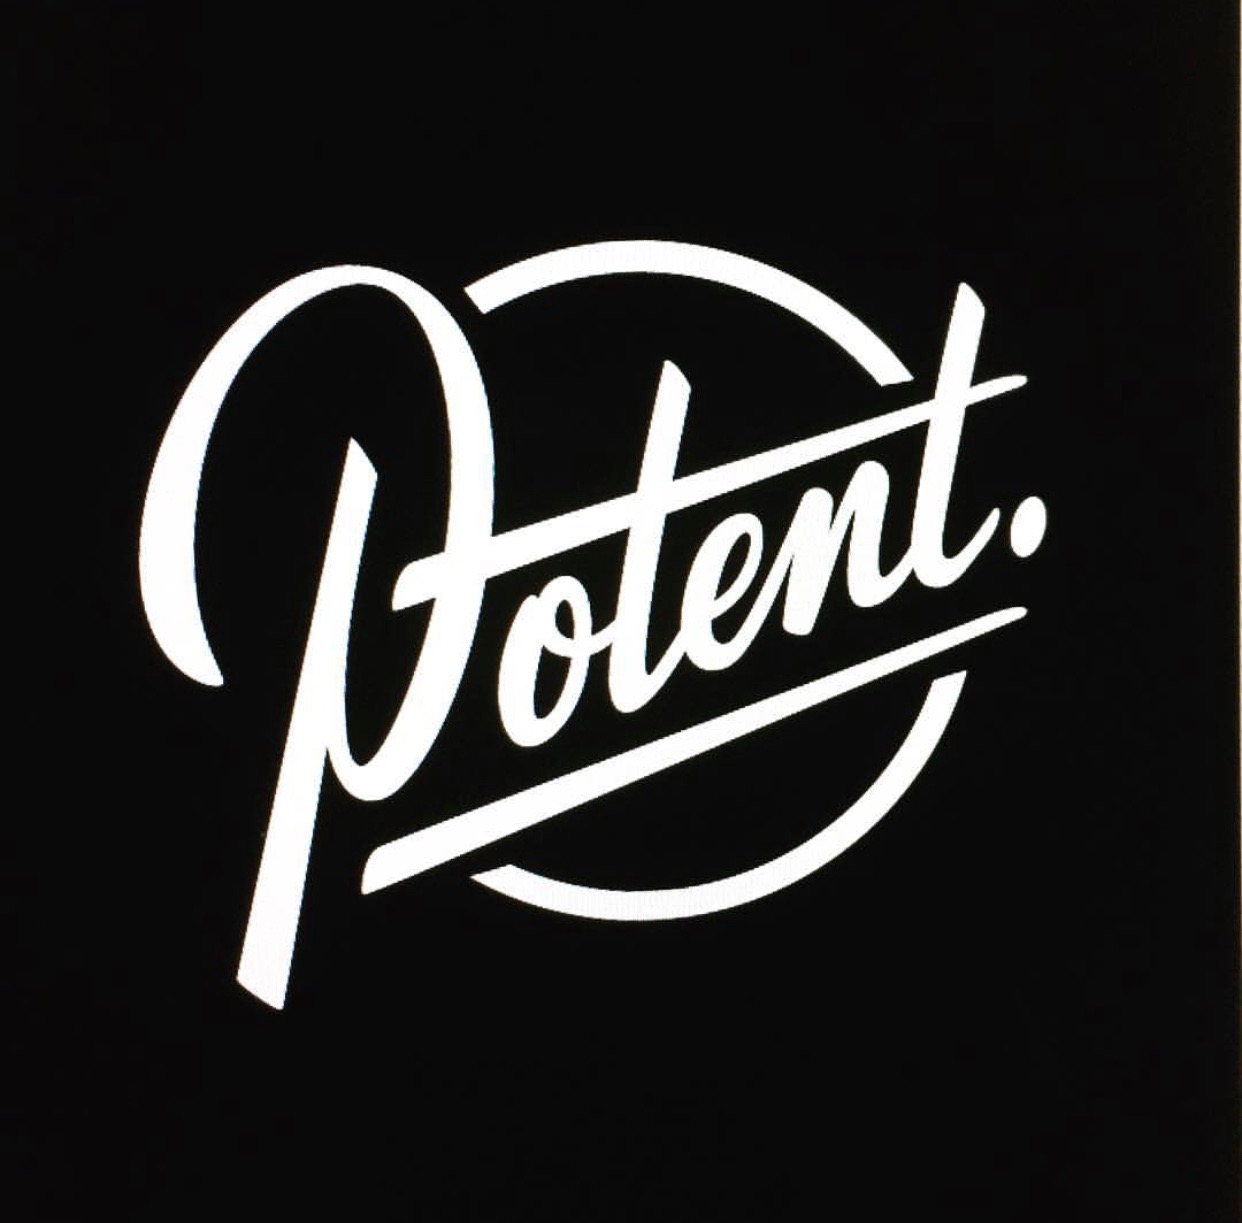 Potent. Branding design and lettering examples